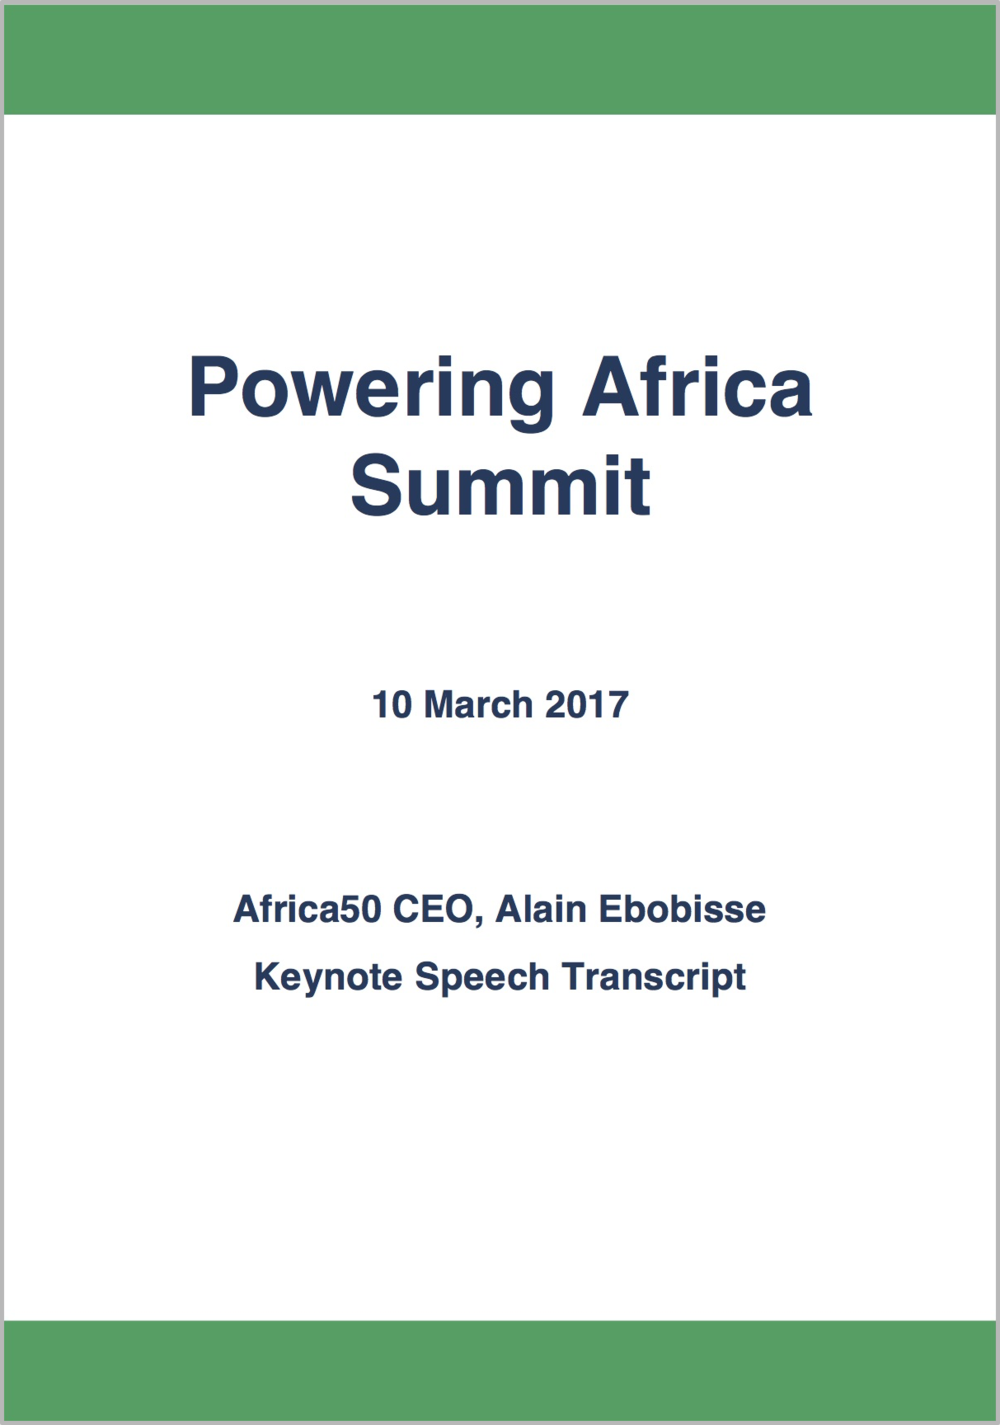 Powering Africa Summit